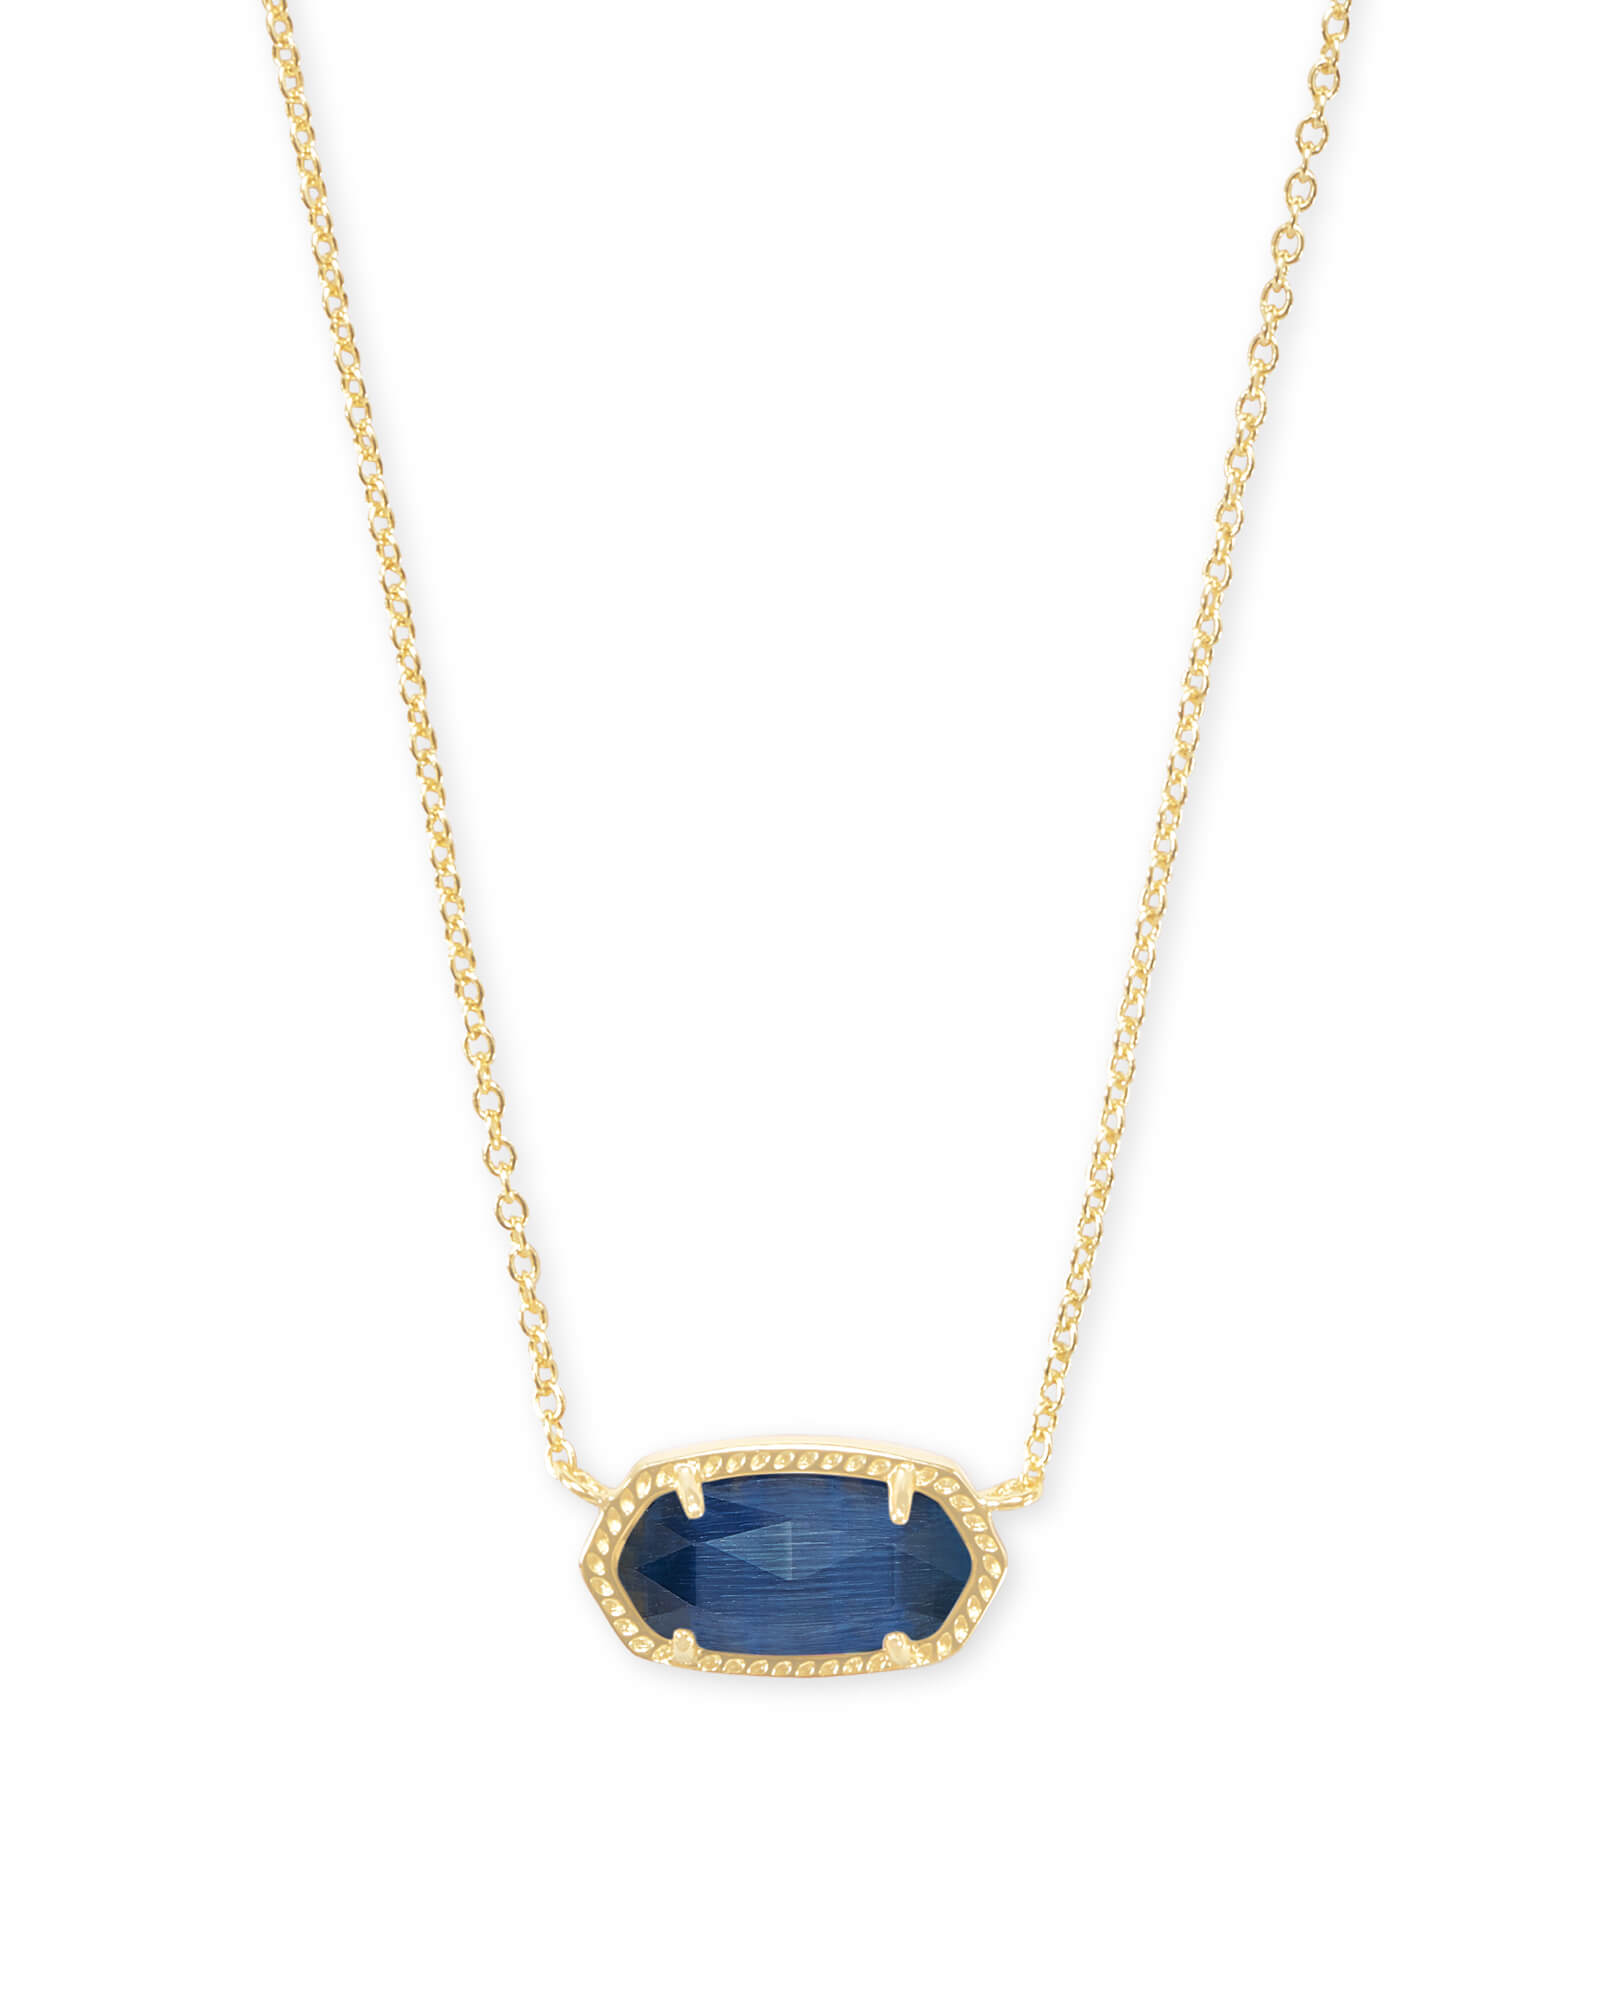 Elisa Gold Pendant Necklace in Navy Cat's Eye